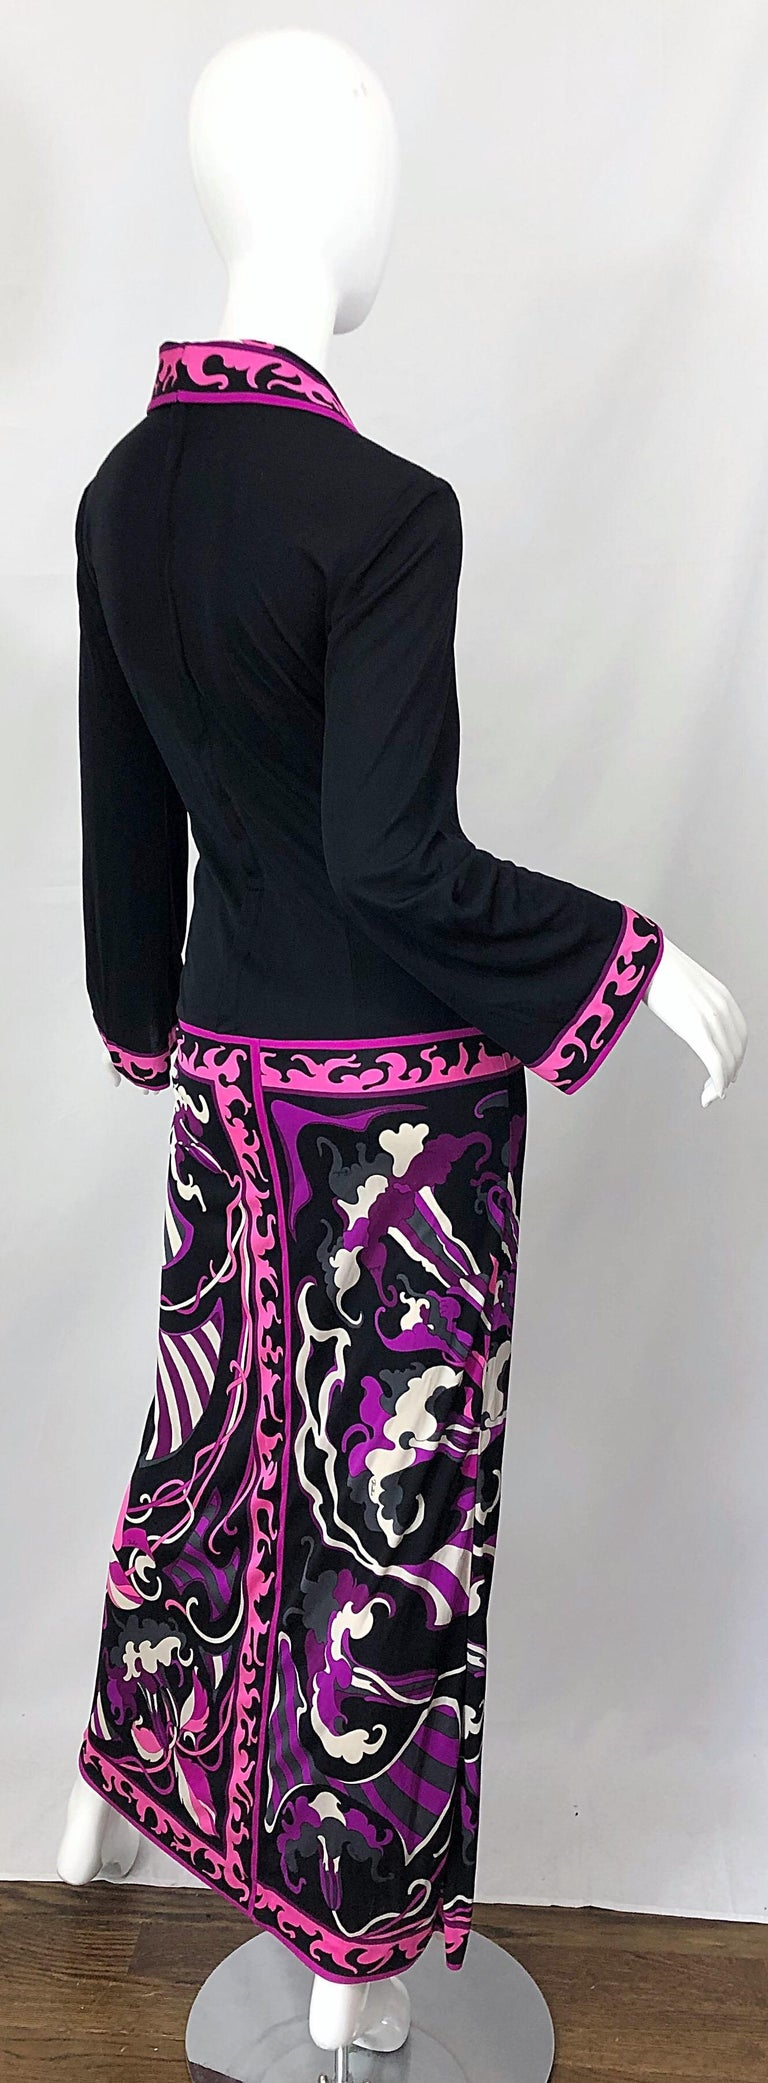 Emilio Pucci 1970s Silk Jersey Pink Purple Black Vintage 70s Maxi Dress For Sale 8